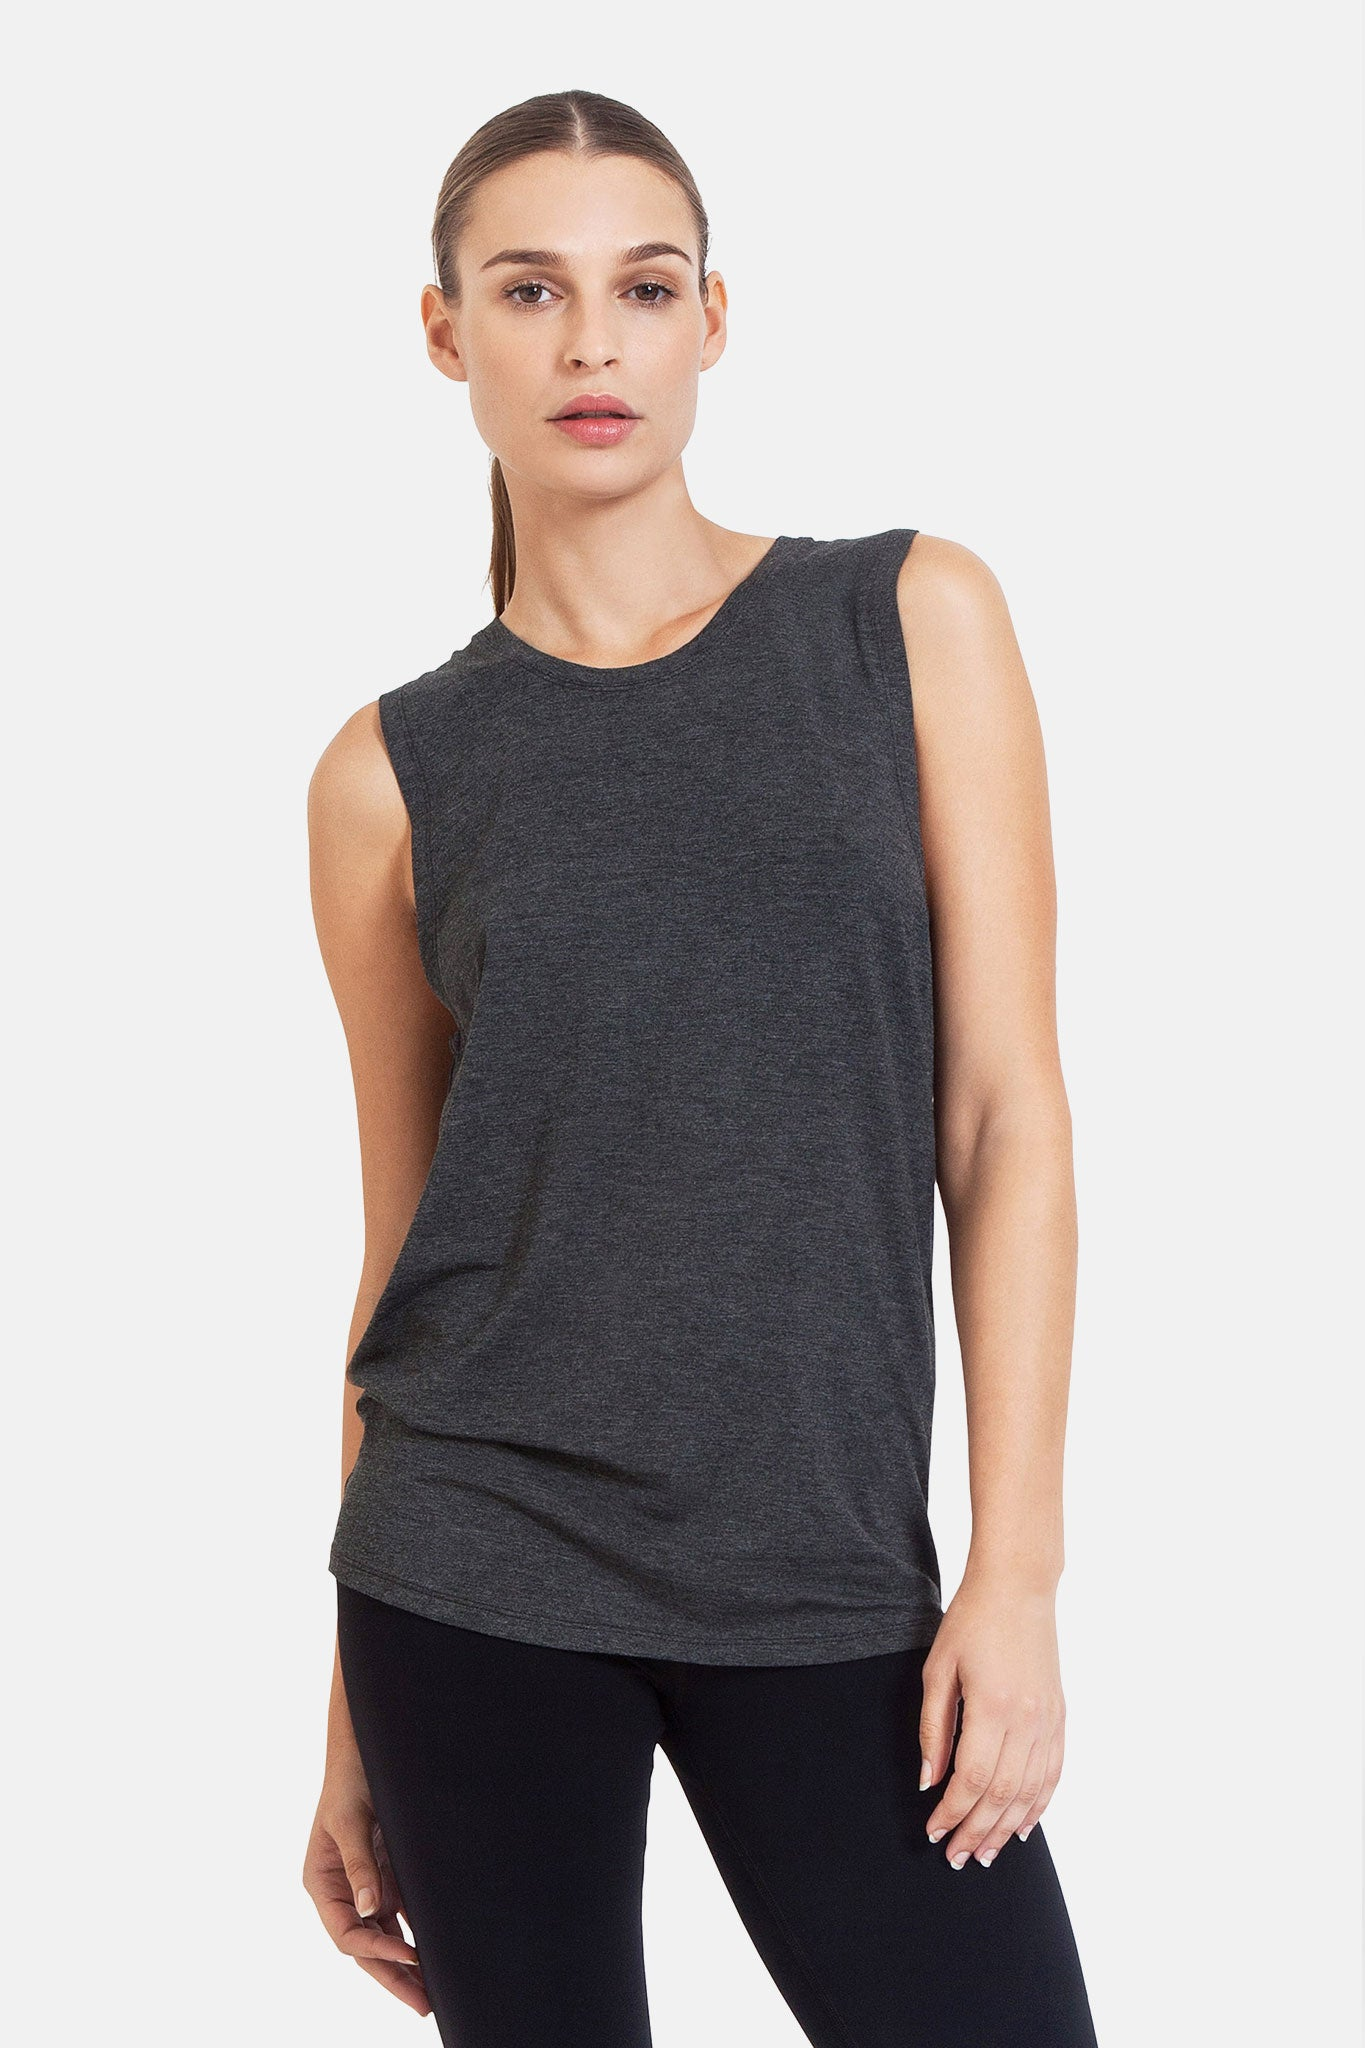 'Diamond Tee' - Bamboo - Charcoal